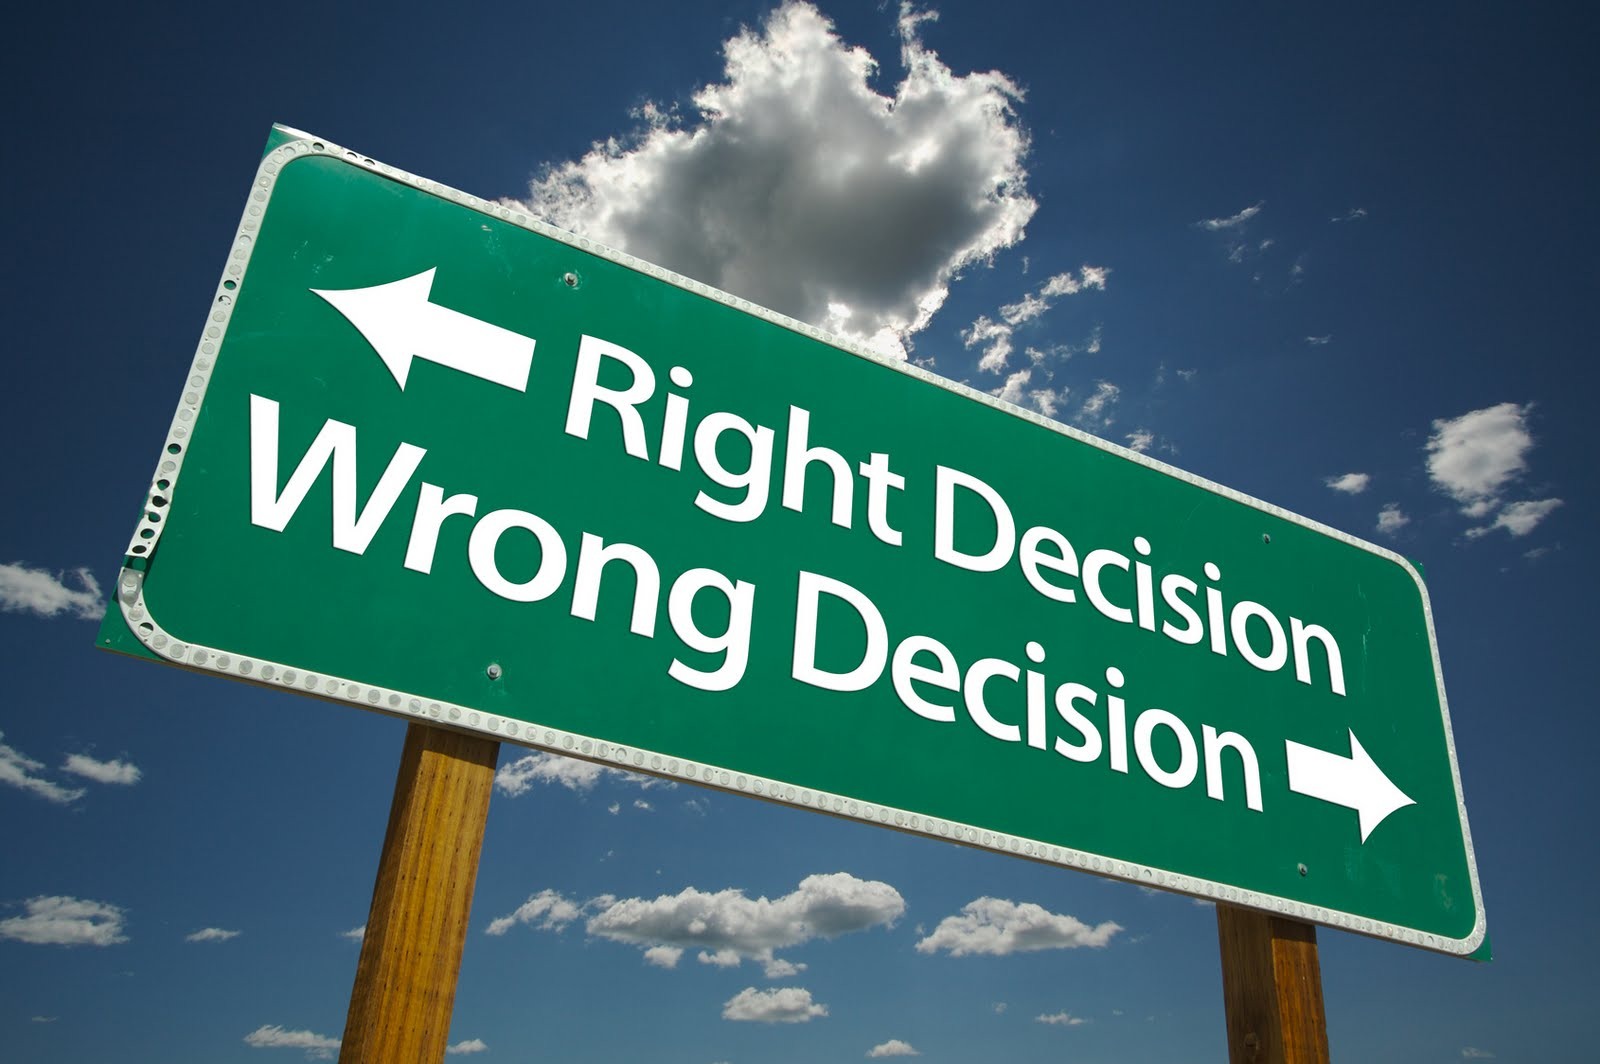 watch more like right versus wrong example future you university mike spillman choose responsibly act